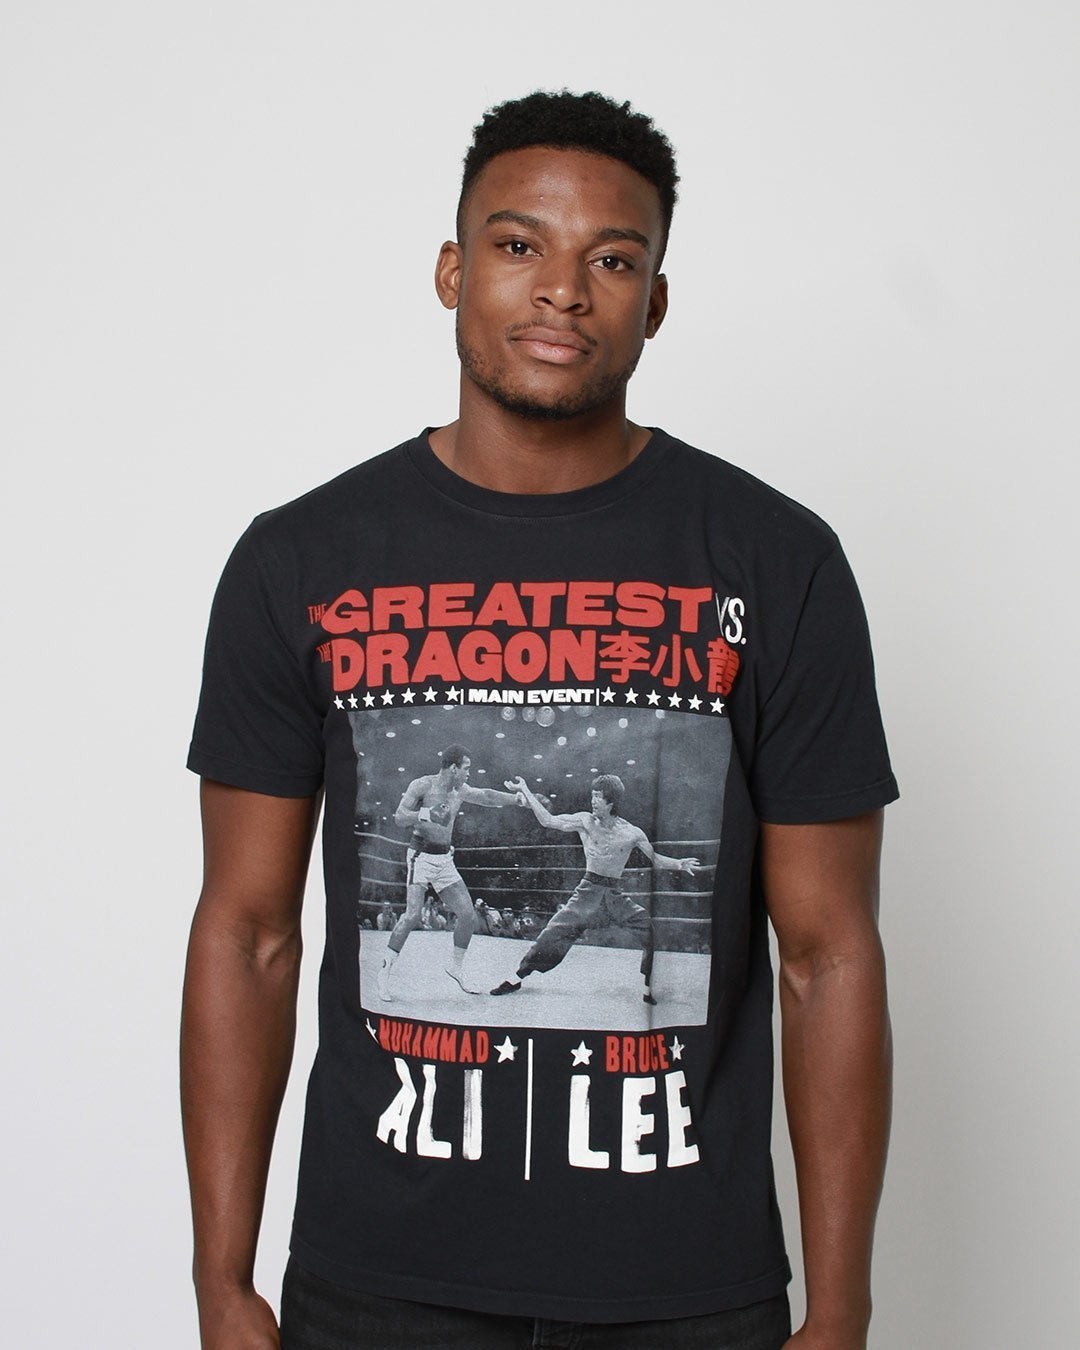 Ali vs. Lee - Night of Greatness Tee - Roots of Inc dba Roots of Fight